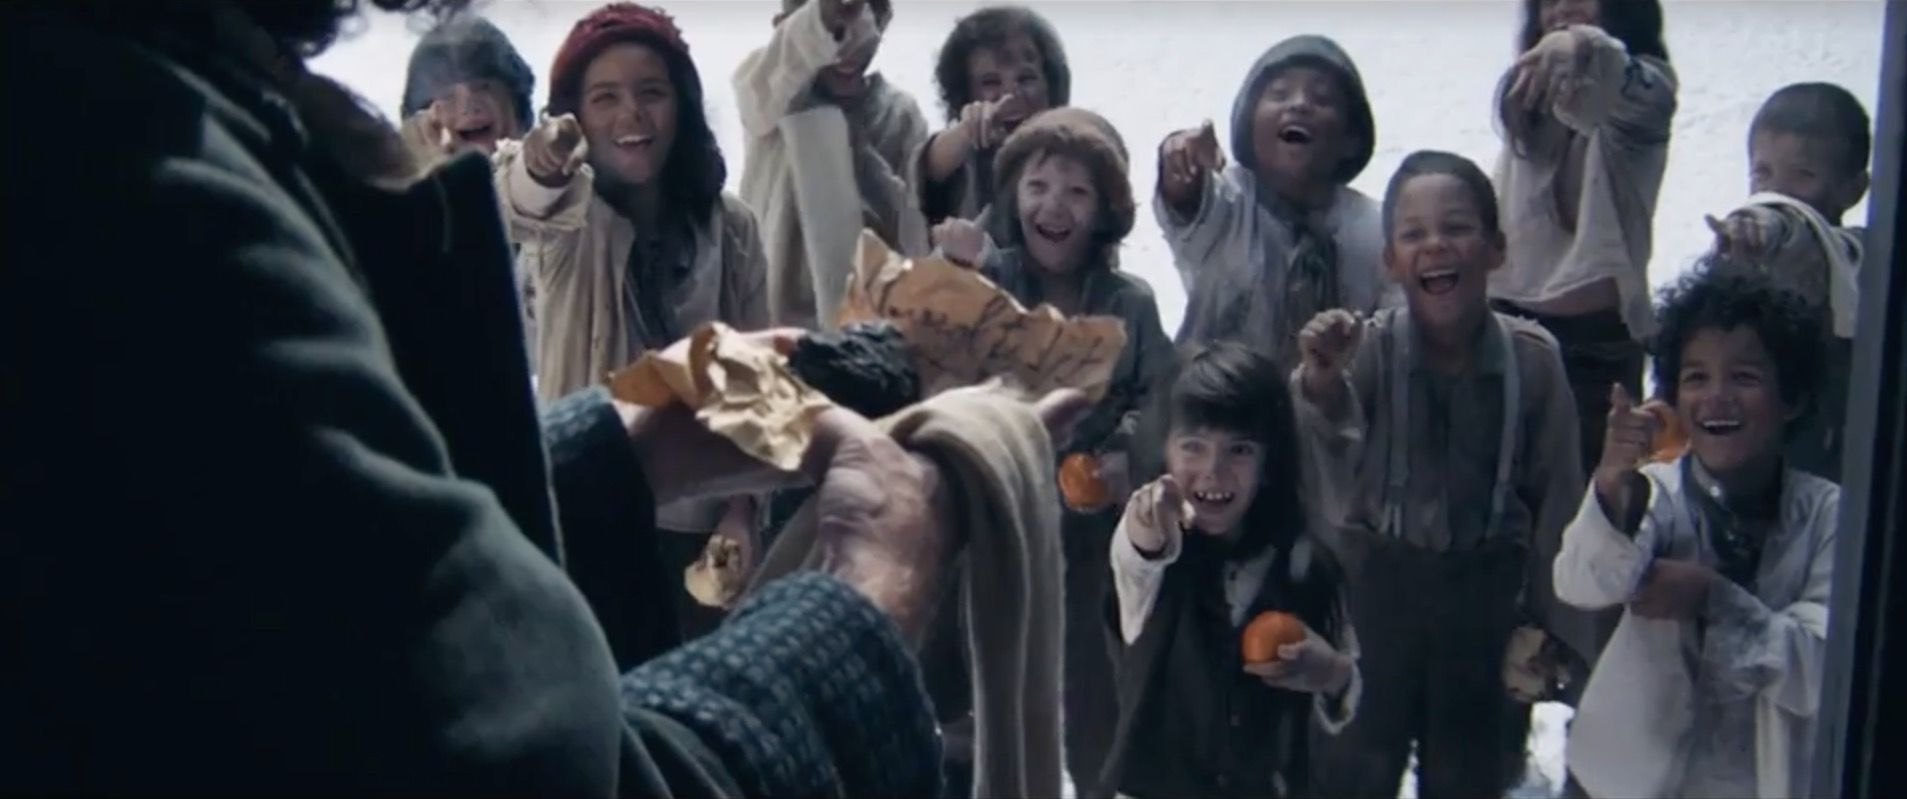 Sainsbury's Christmas advert 2019 is set in a Dickensian London